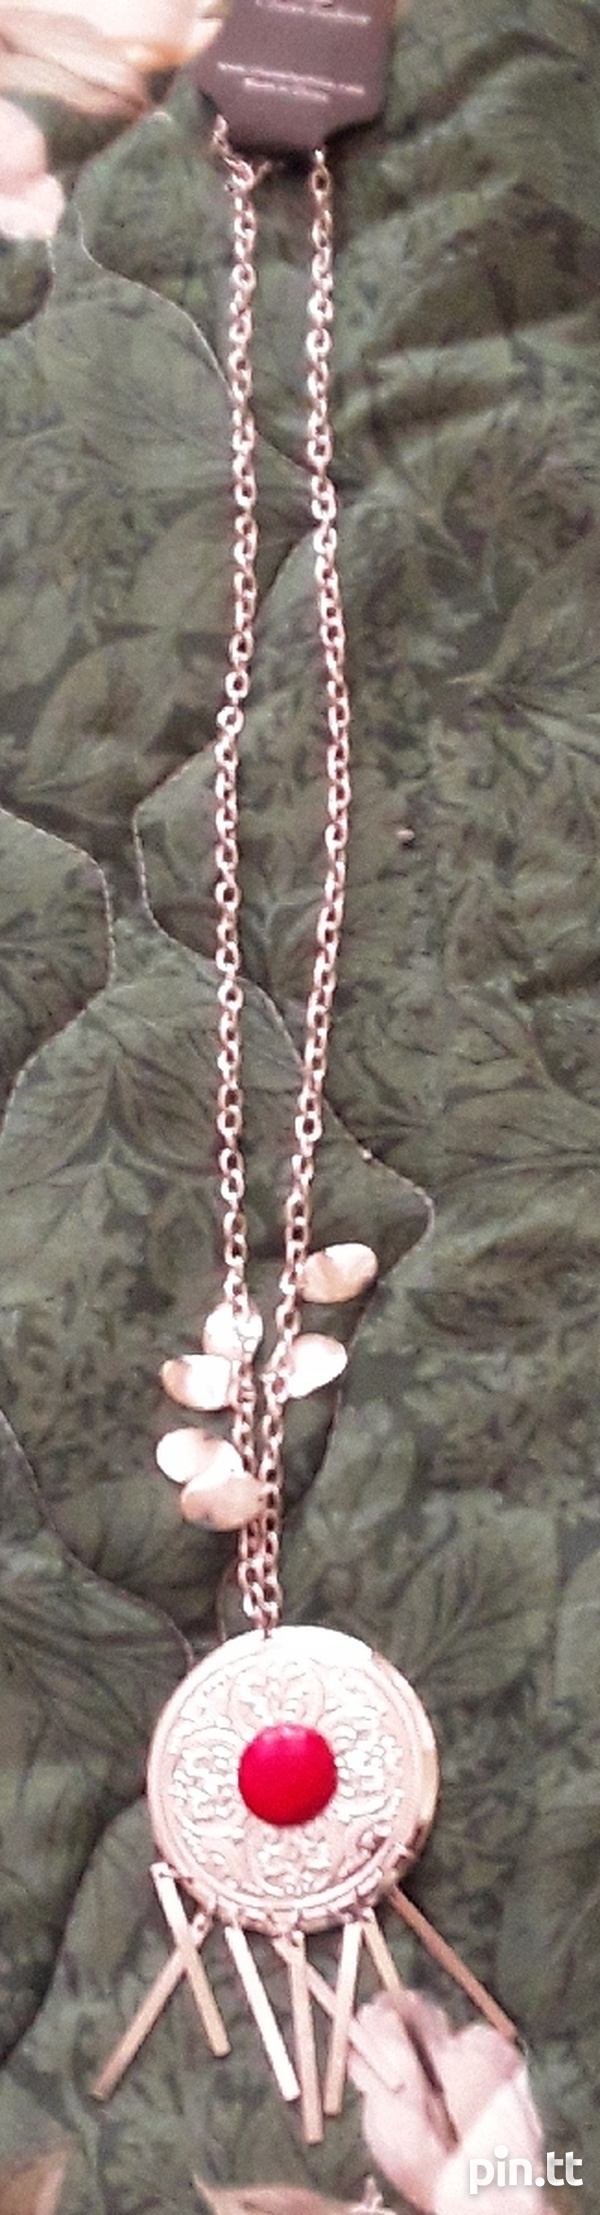 Silver Necklaces Costume Jewellery-5